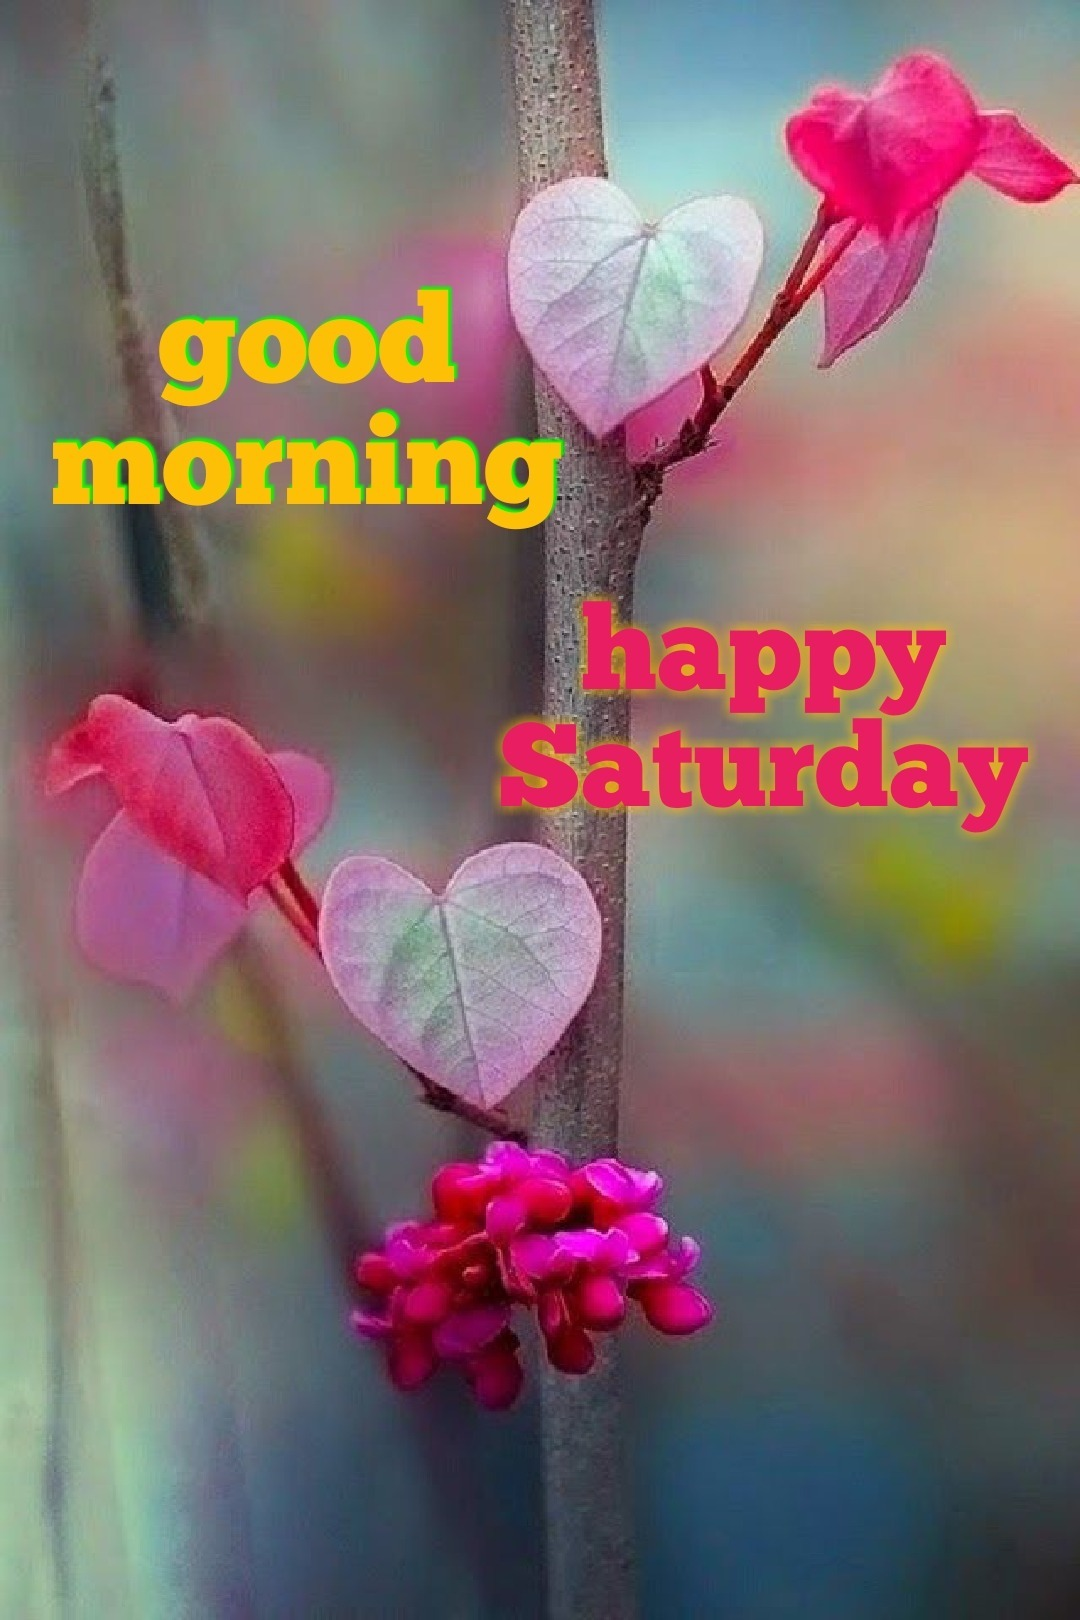 Saturday Pictures Images Graphics